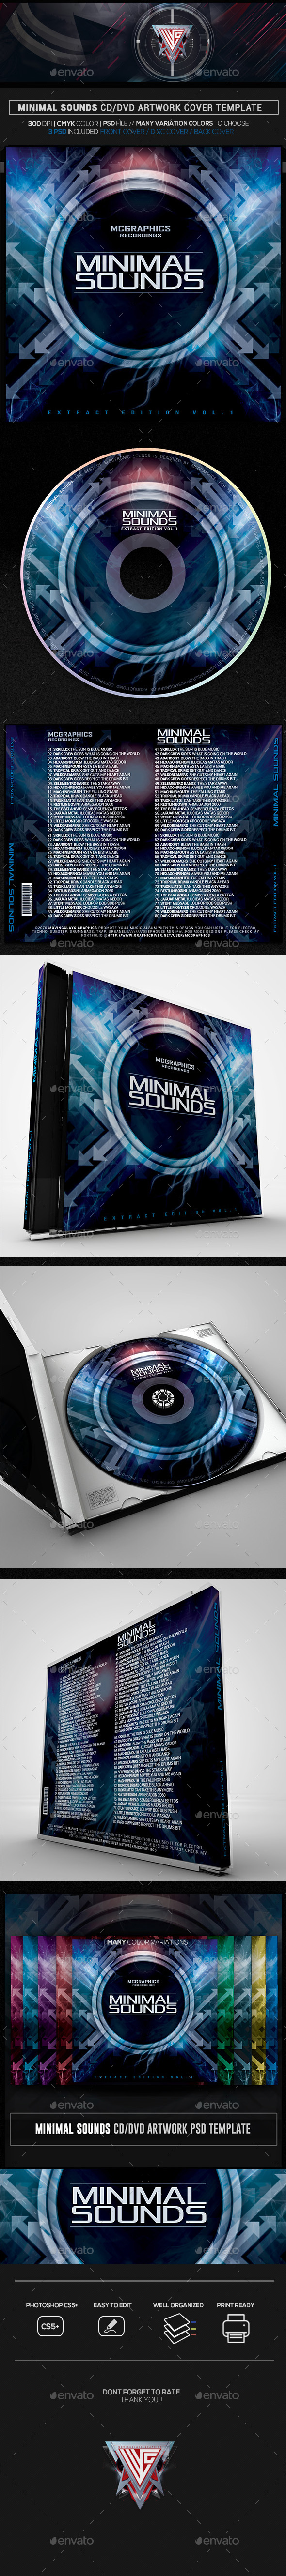 Minimal Sounds CD/DVD Template - CD & DVD Artwork Print Templates